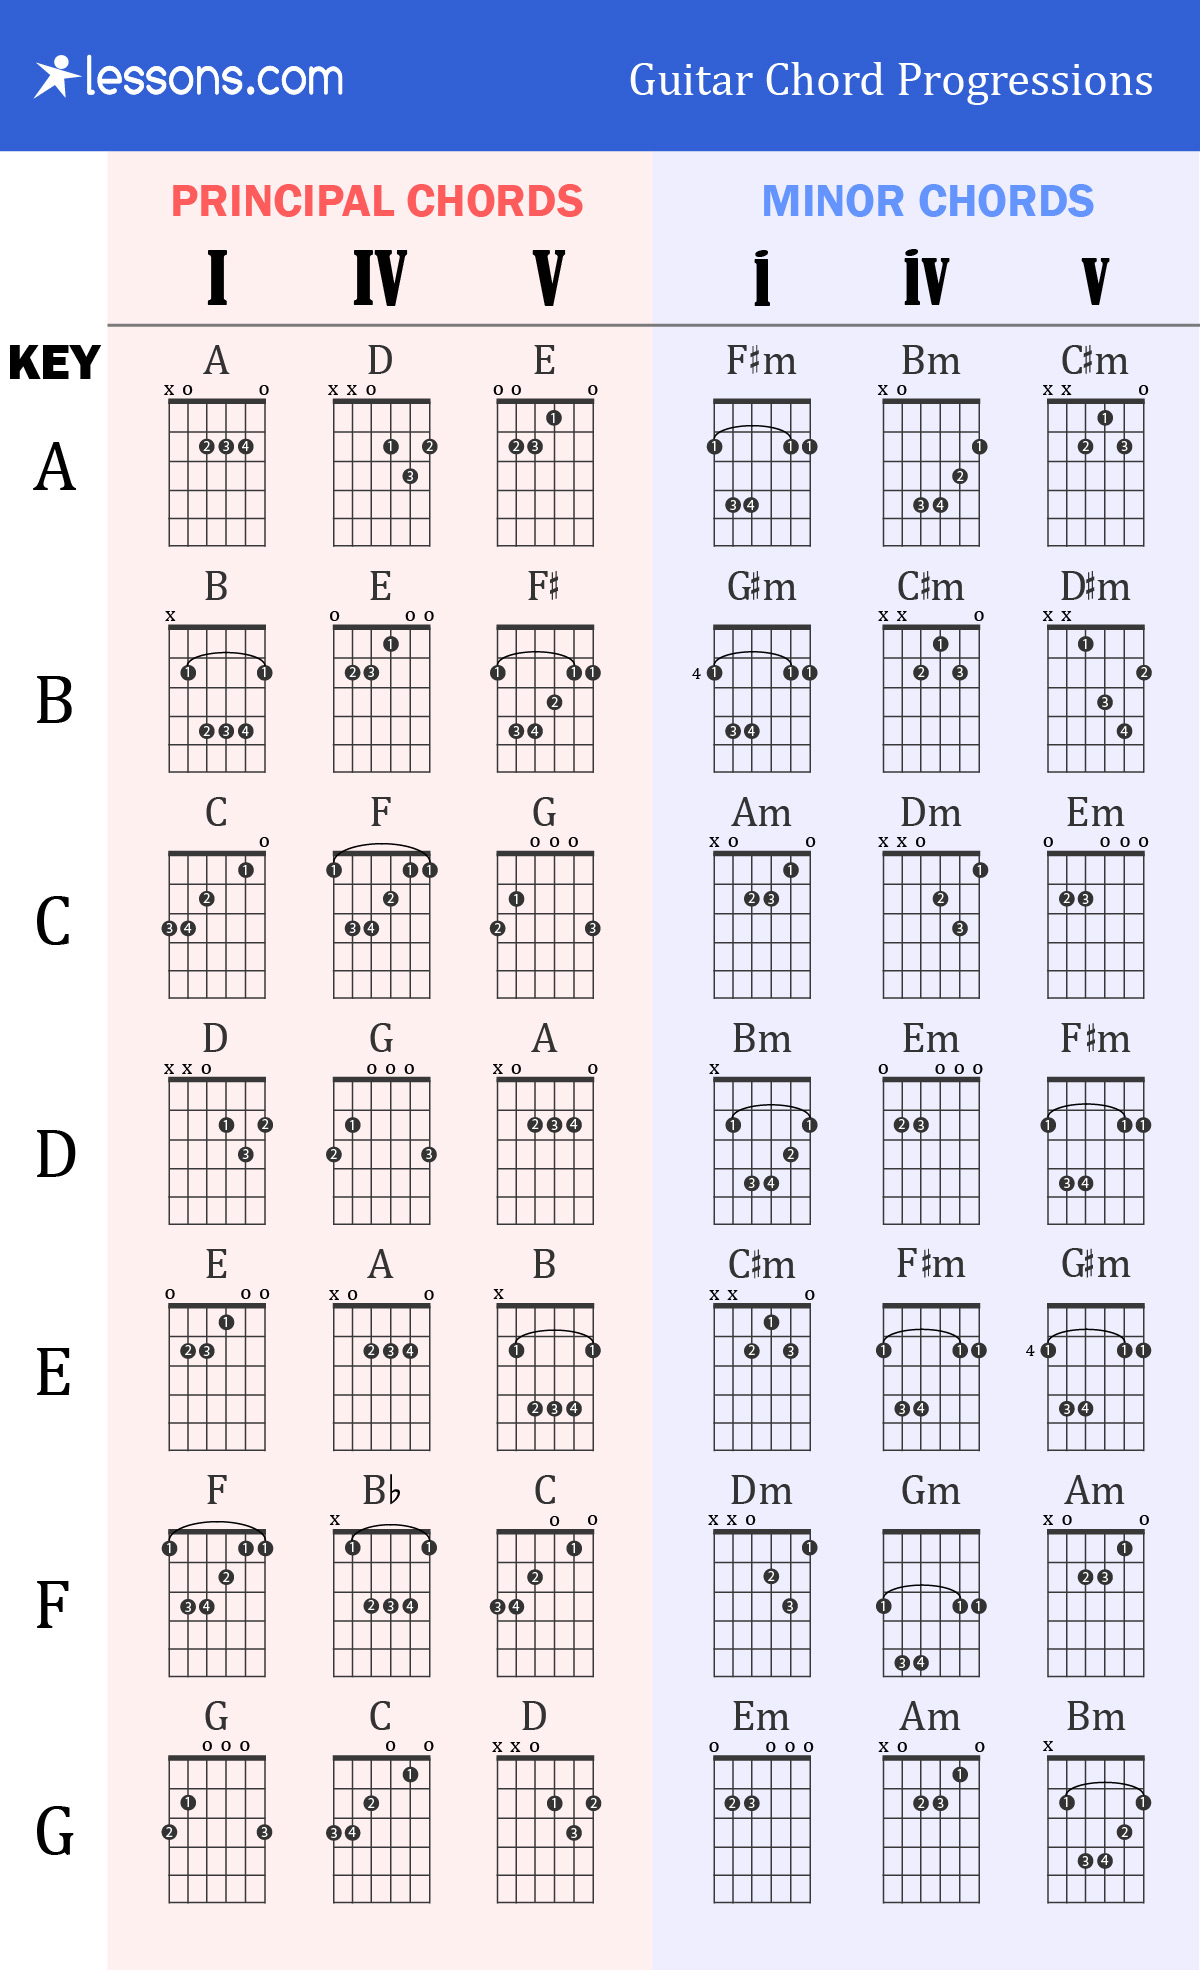 graphic regarding Printable Guitar Chords Chart With Finger Numbers named The 3 Suitable Guitar Chord Progressions (Charts Illustrations